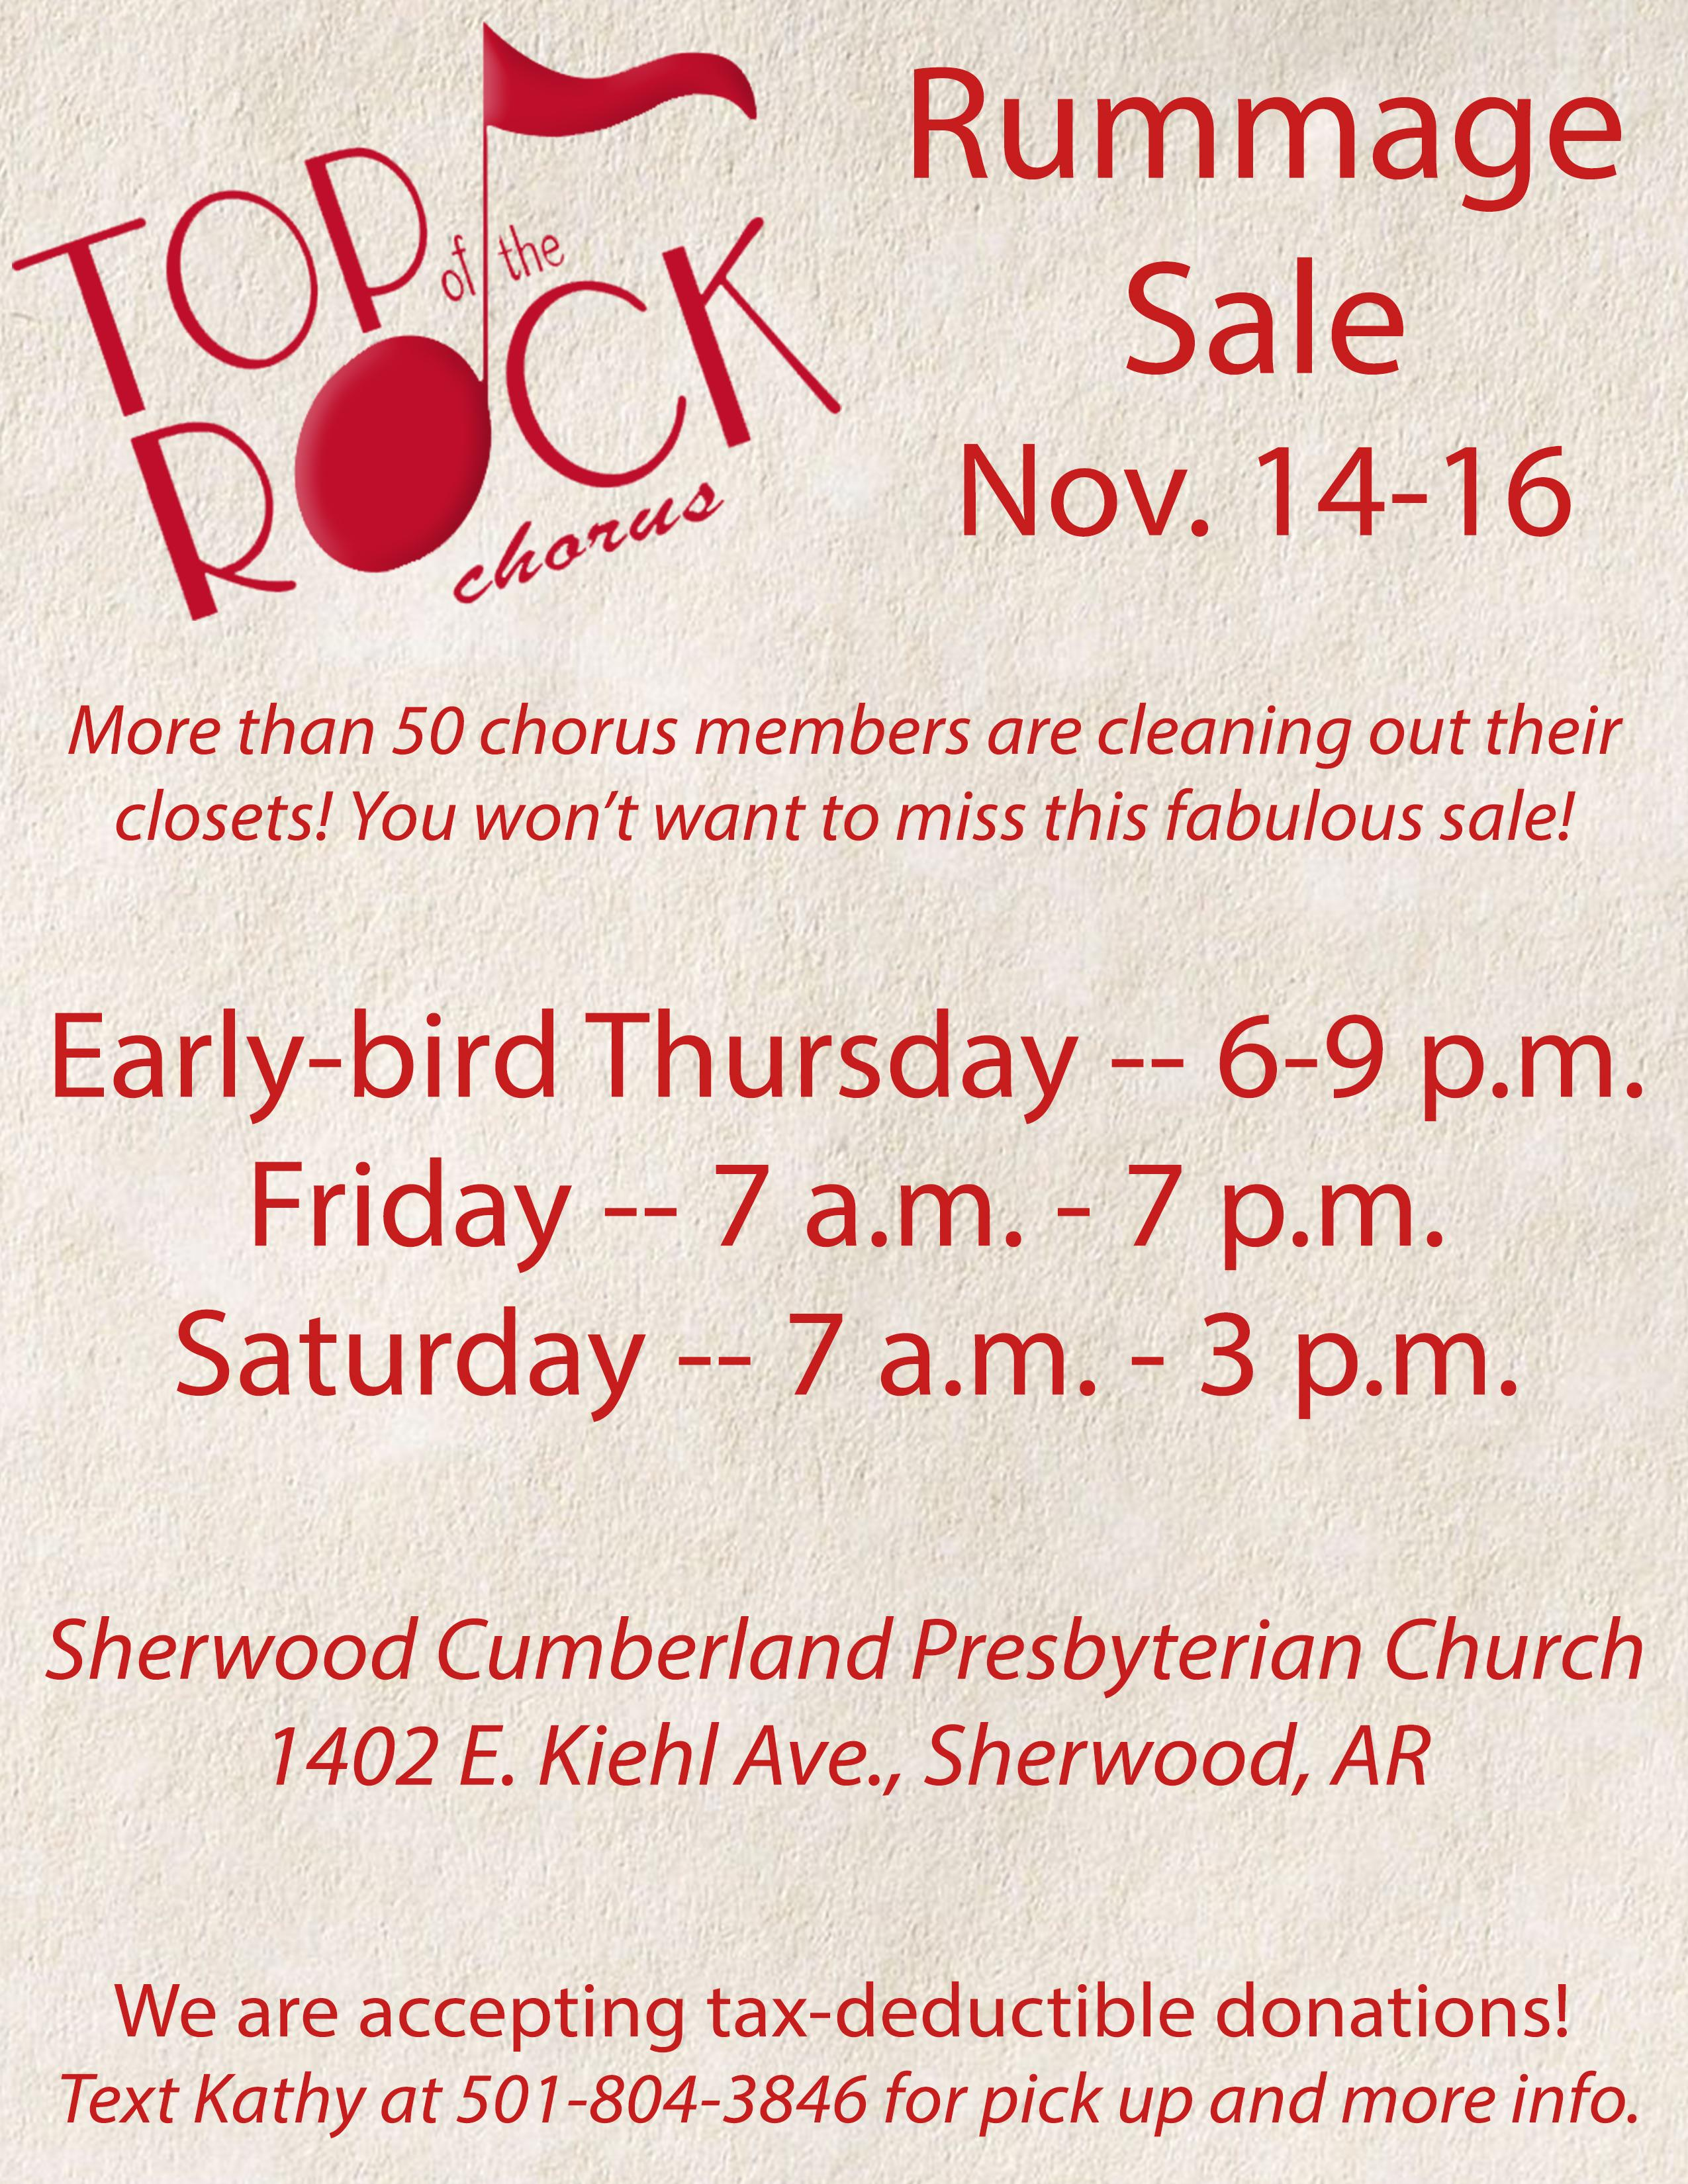 TOTR Fall Rummage Sale